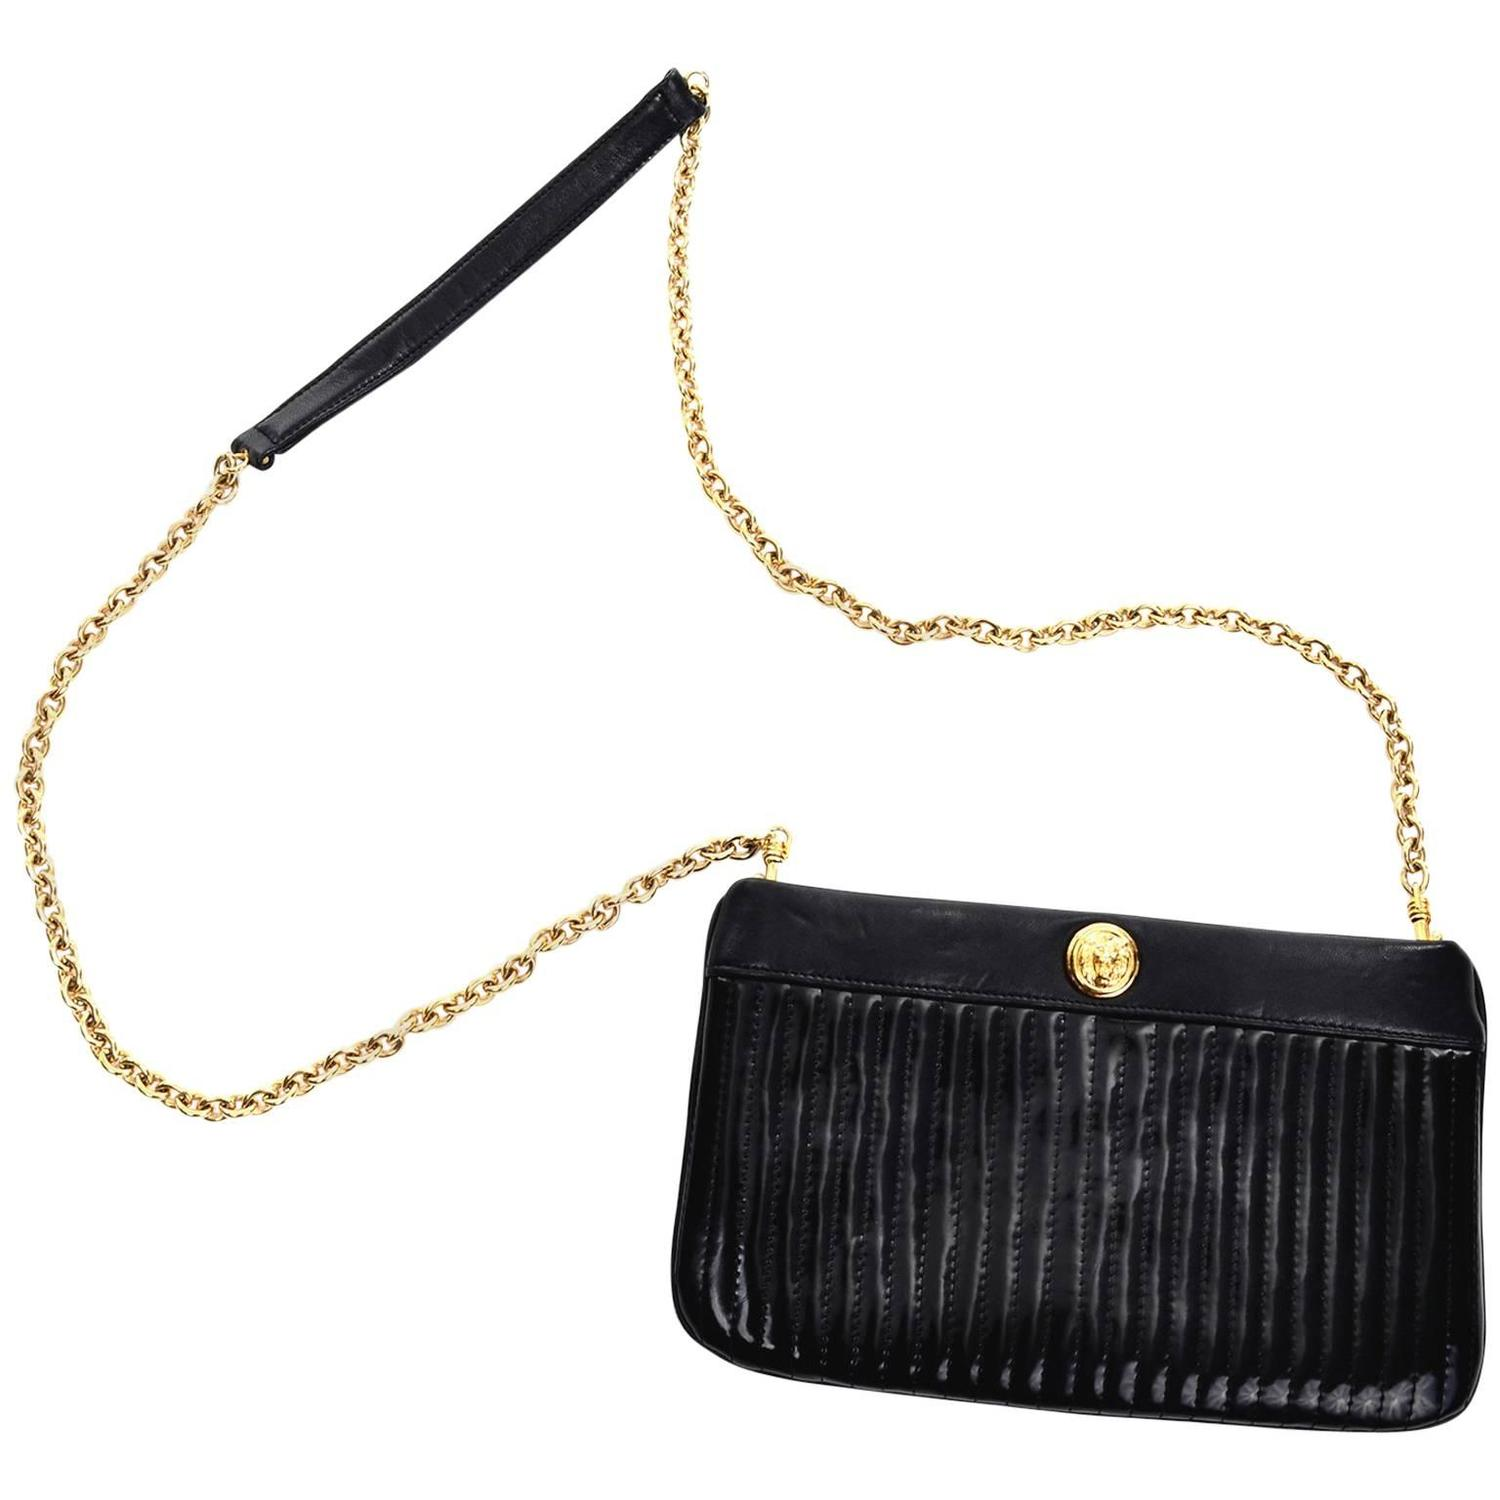 Leather quilted handbags and purses - Anne Klein Vintage Black Leather Quilted Handbag Shoulder Bag Lion Logo